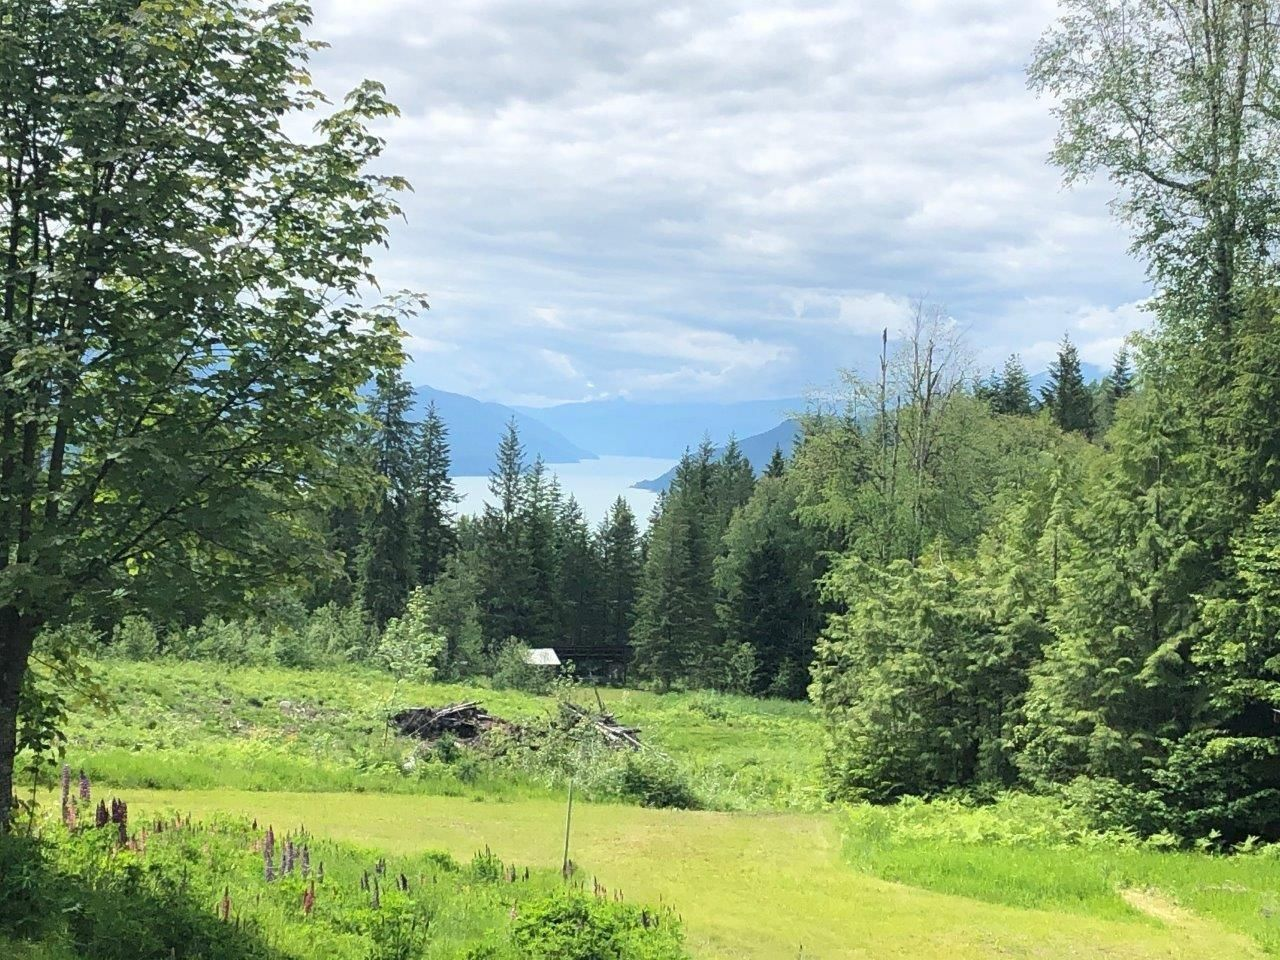 Main Photo: DL 10026 NEEDLES NORTH RD in Needles: House for sale : MLS®# 2459280